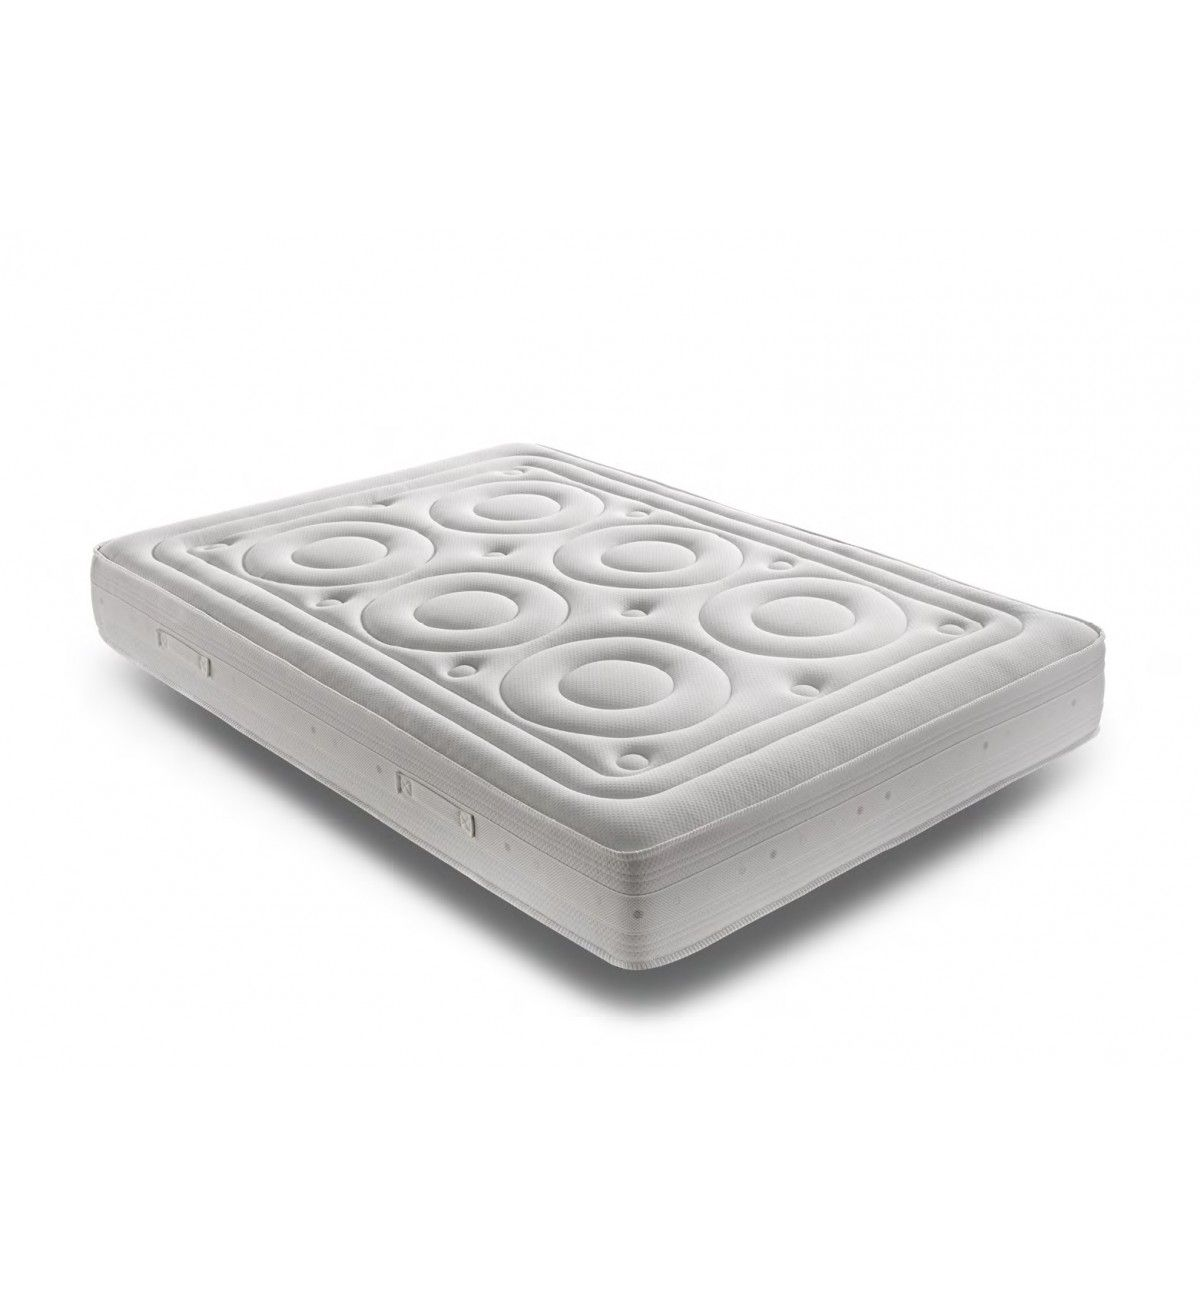 the fusion dri tec mattress topper is designed to wick away heat and